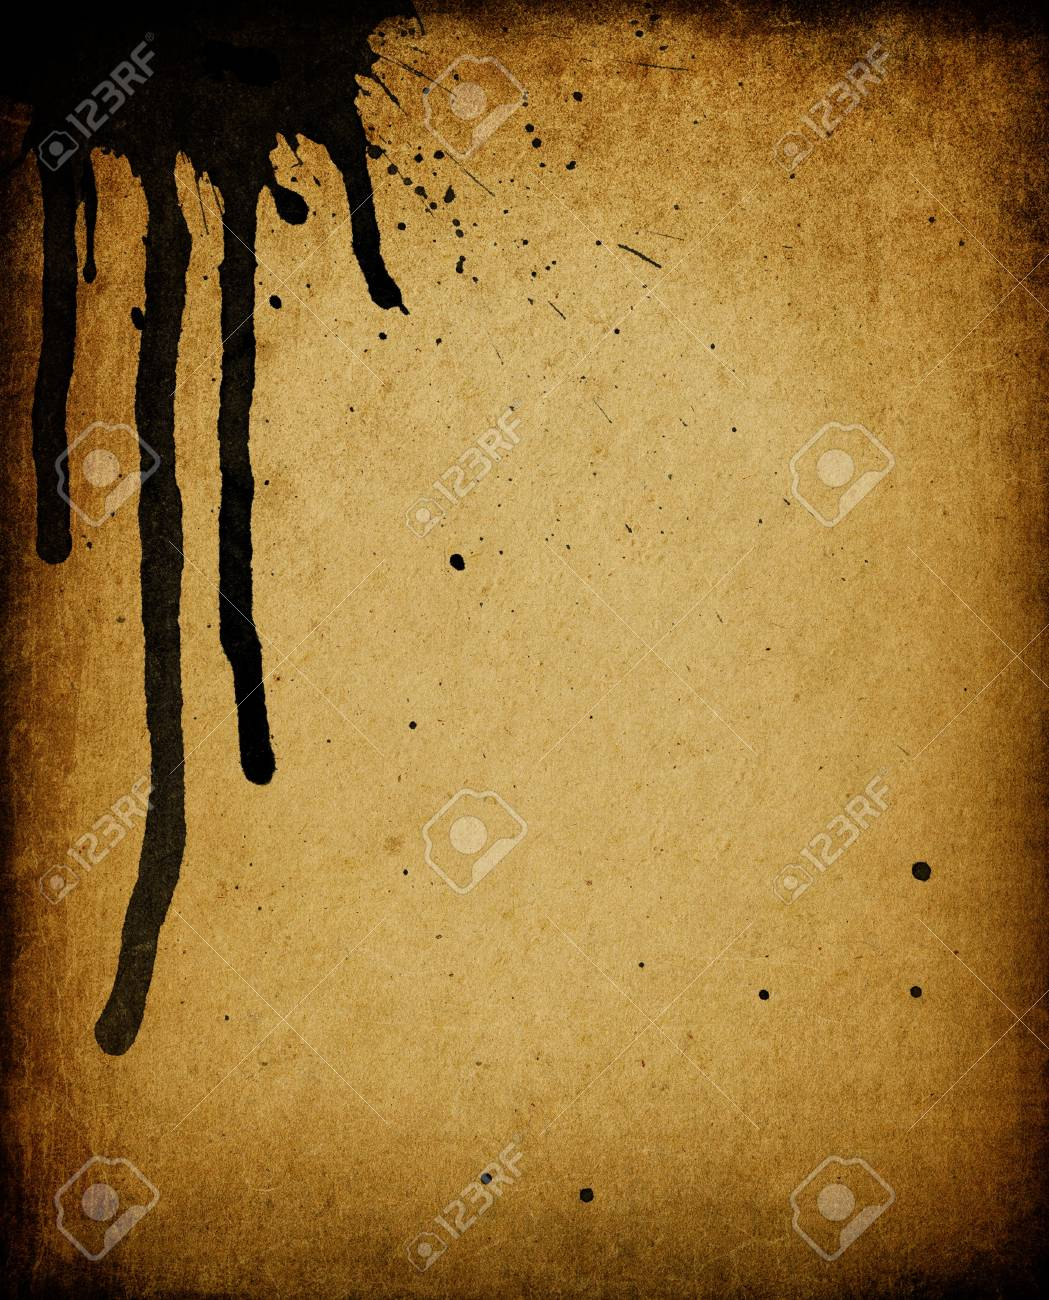 Vintage stained paper, useful as background element in designworks. Stock Photo - 7853279